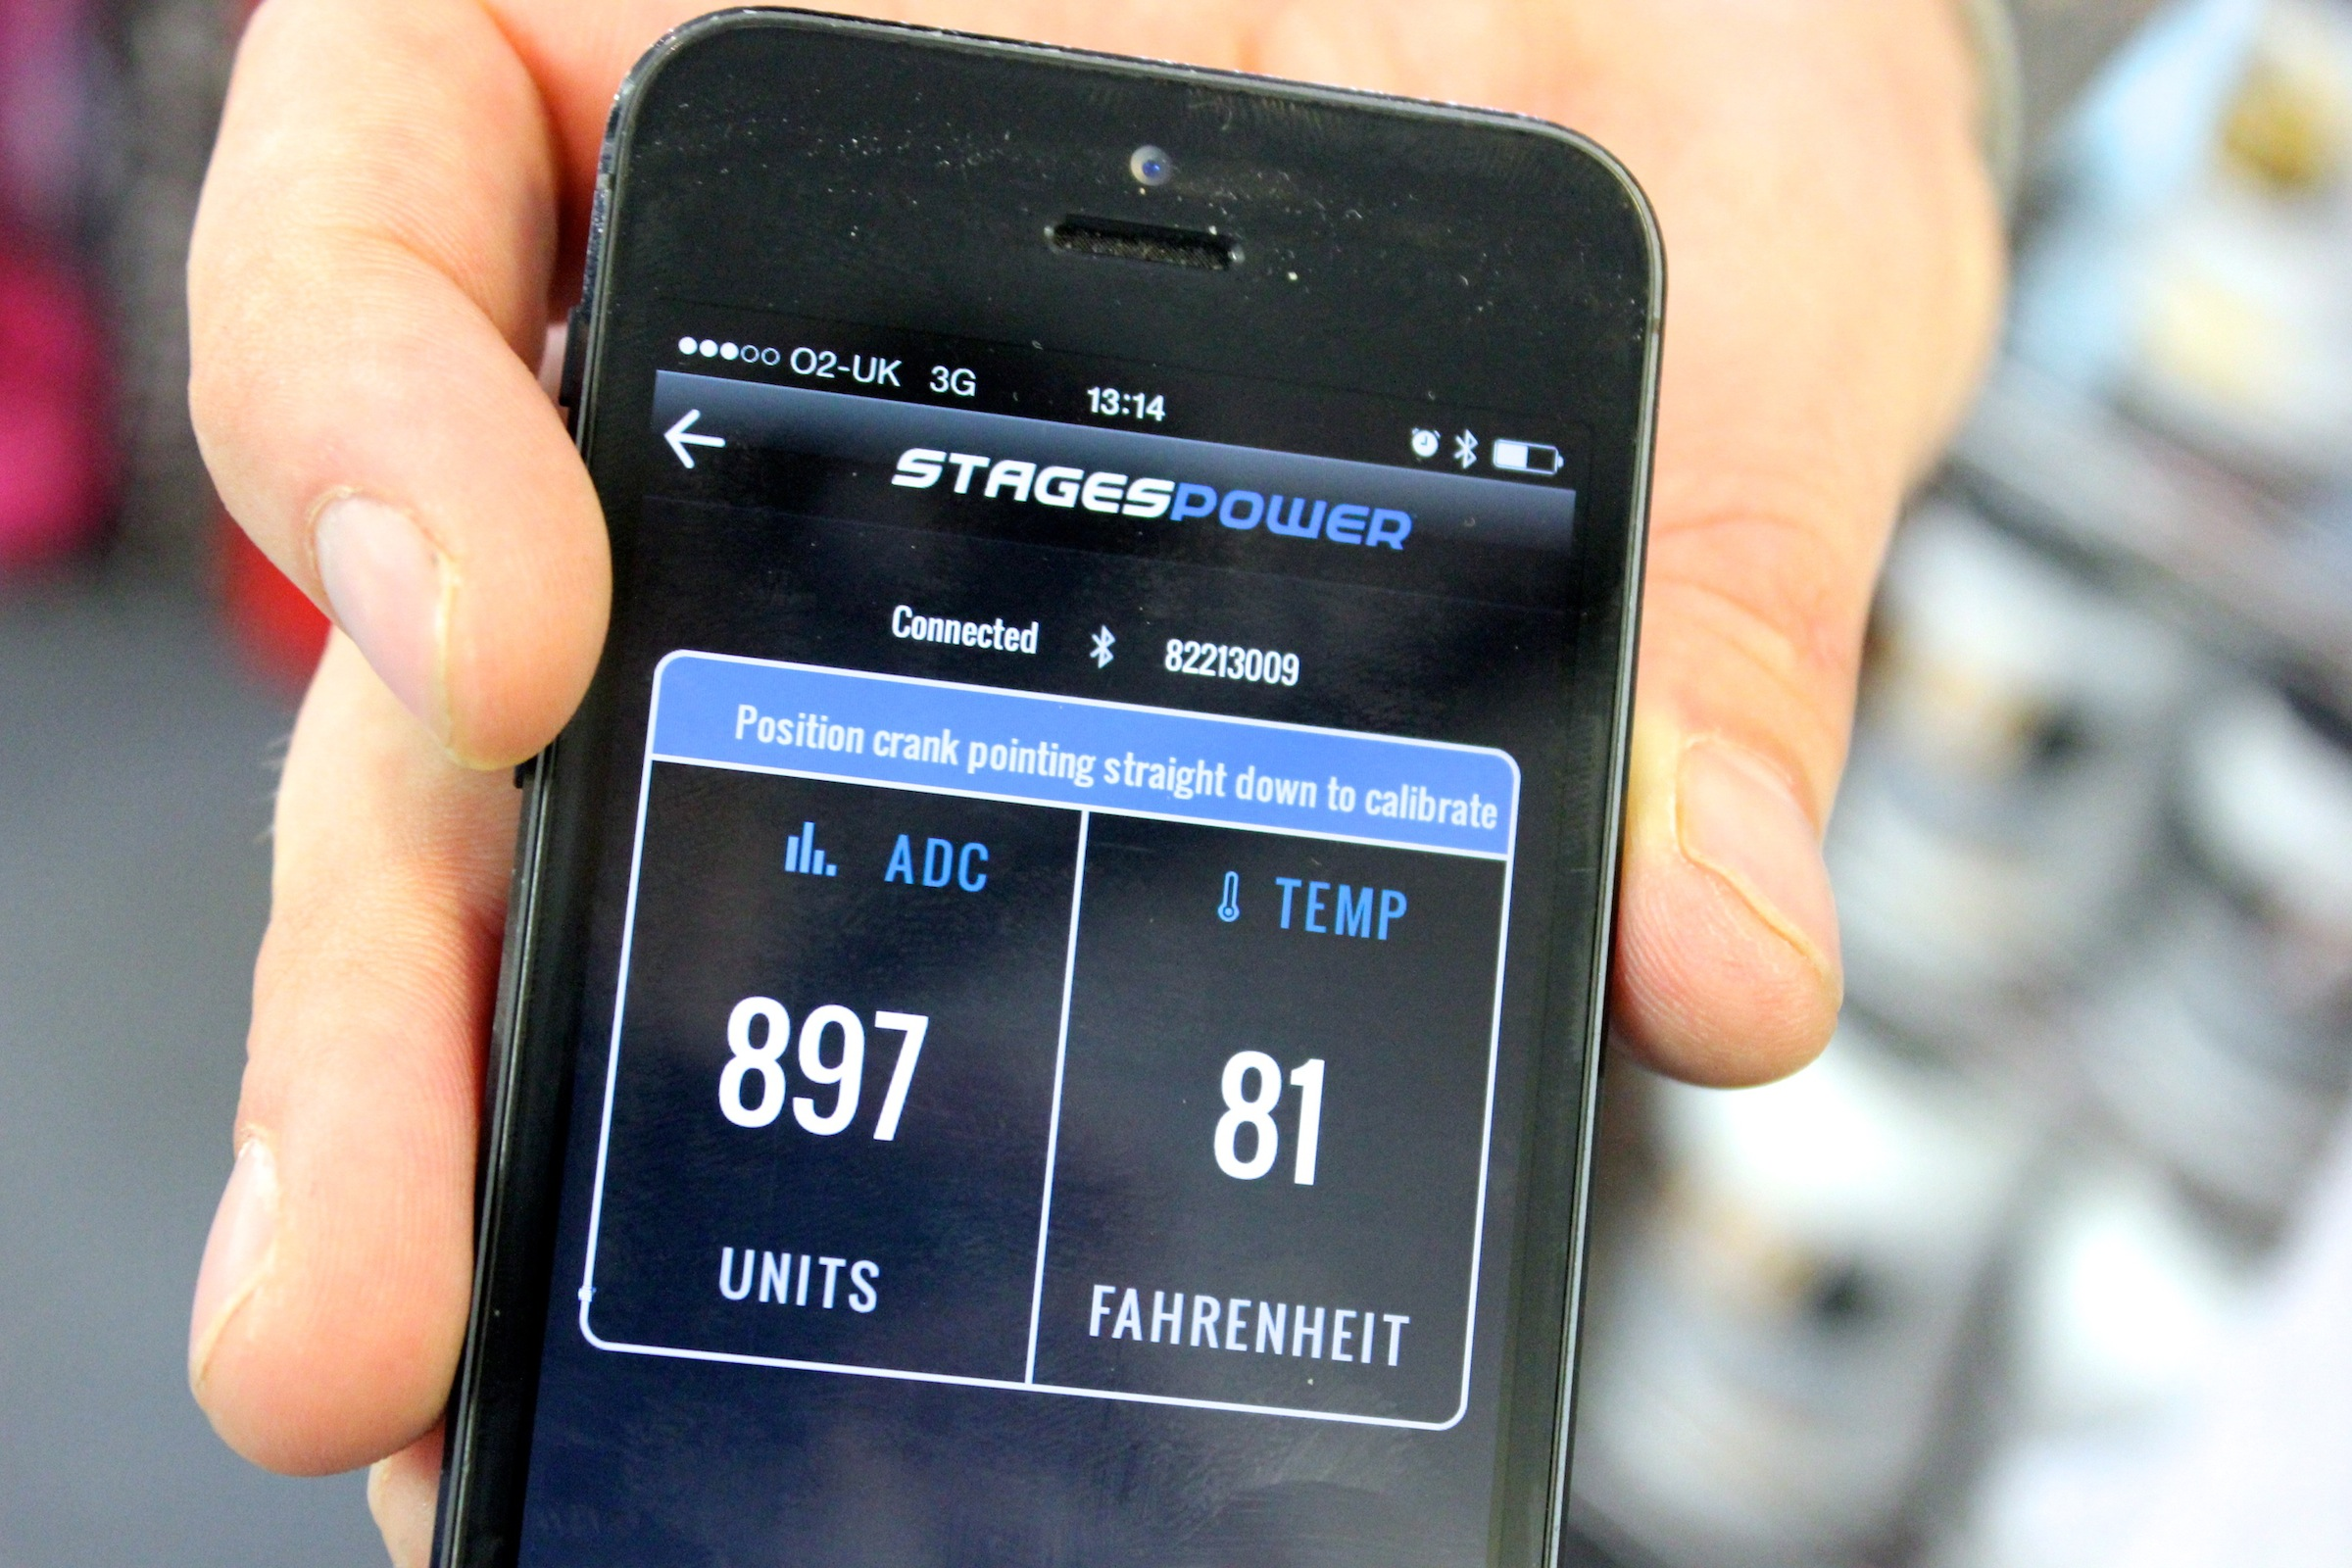 Stages power meter, iPhone App, pic: Timothy John, ©Factory Media